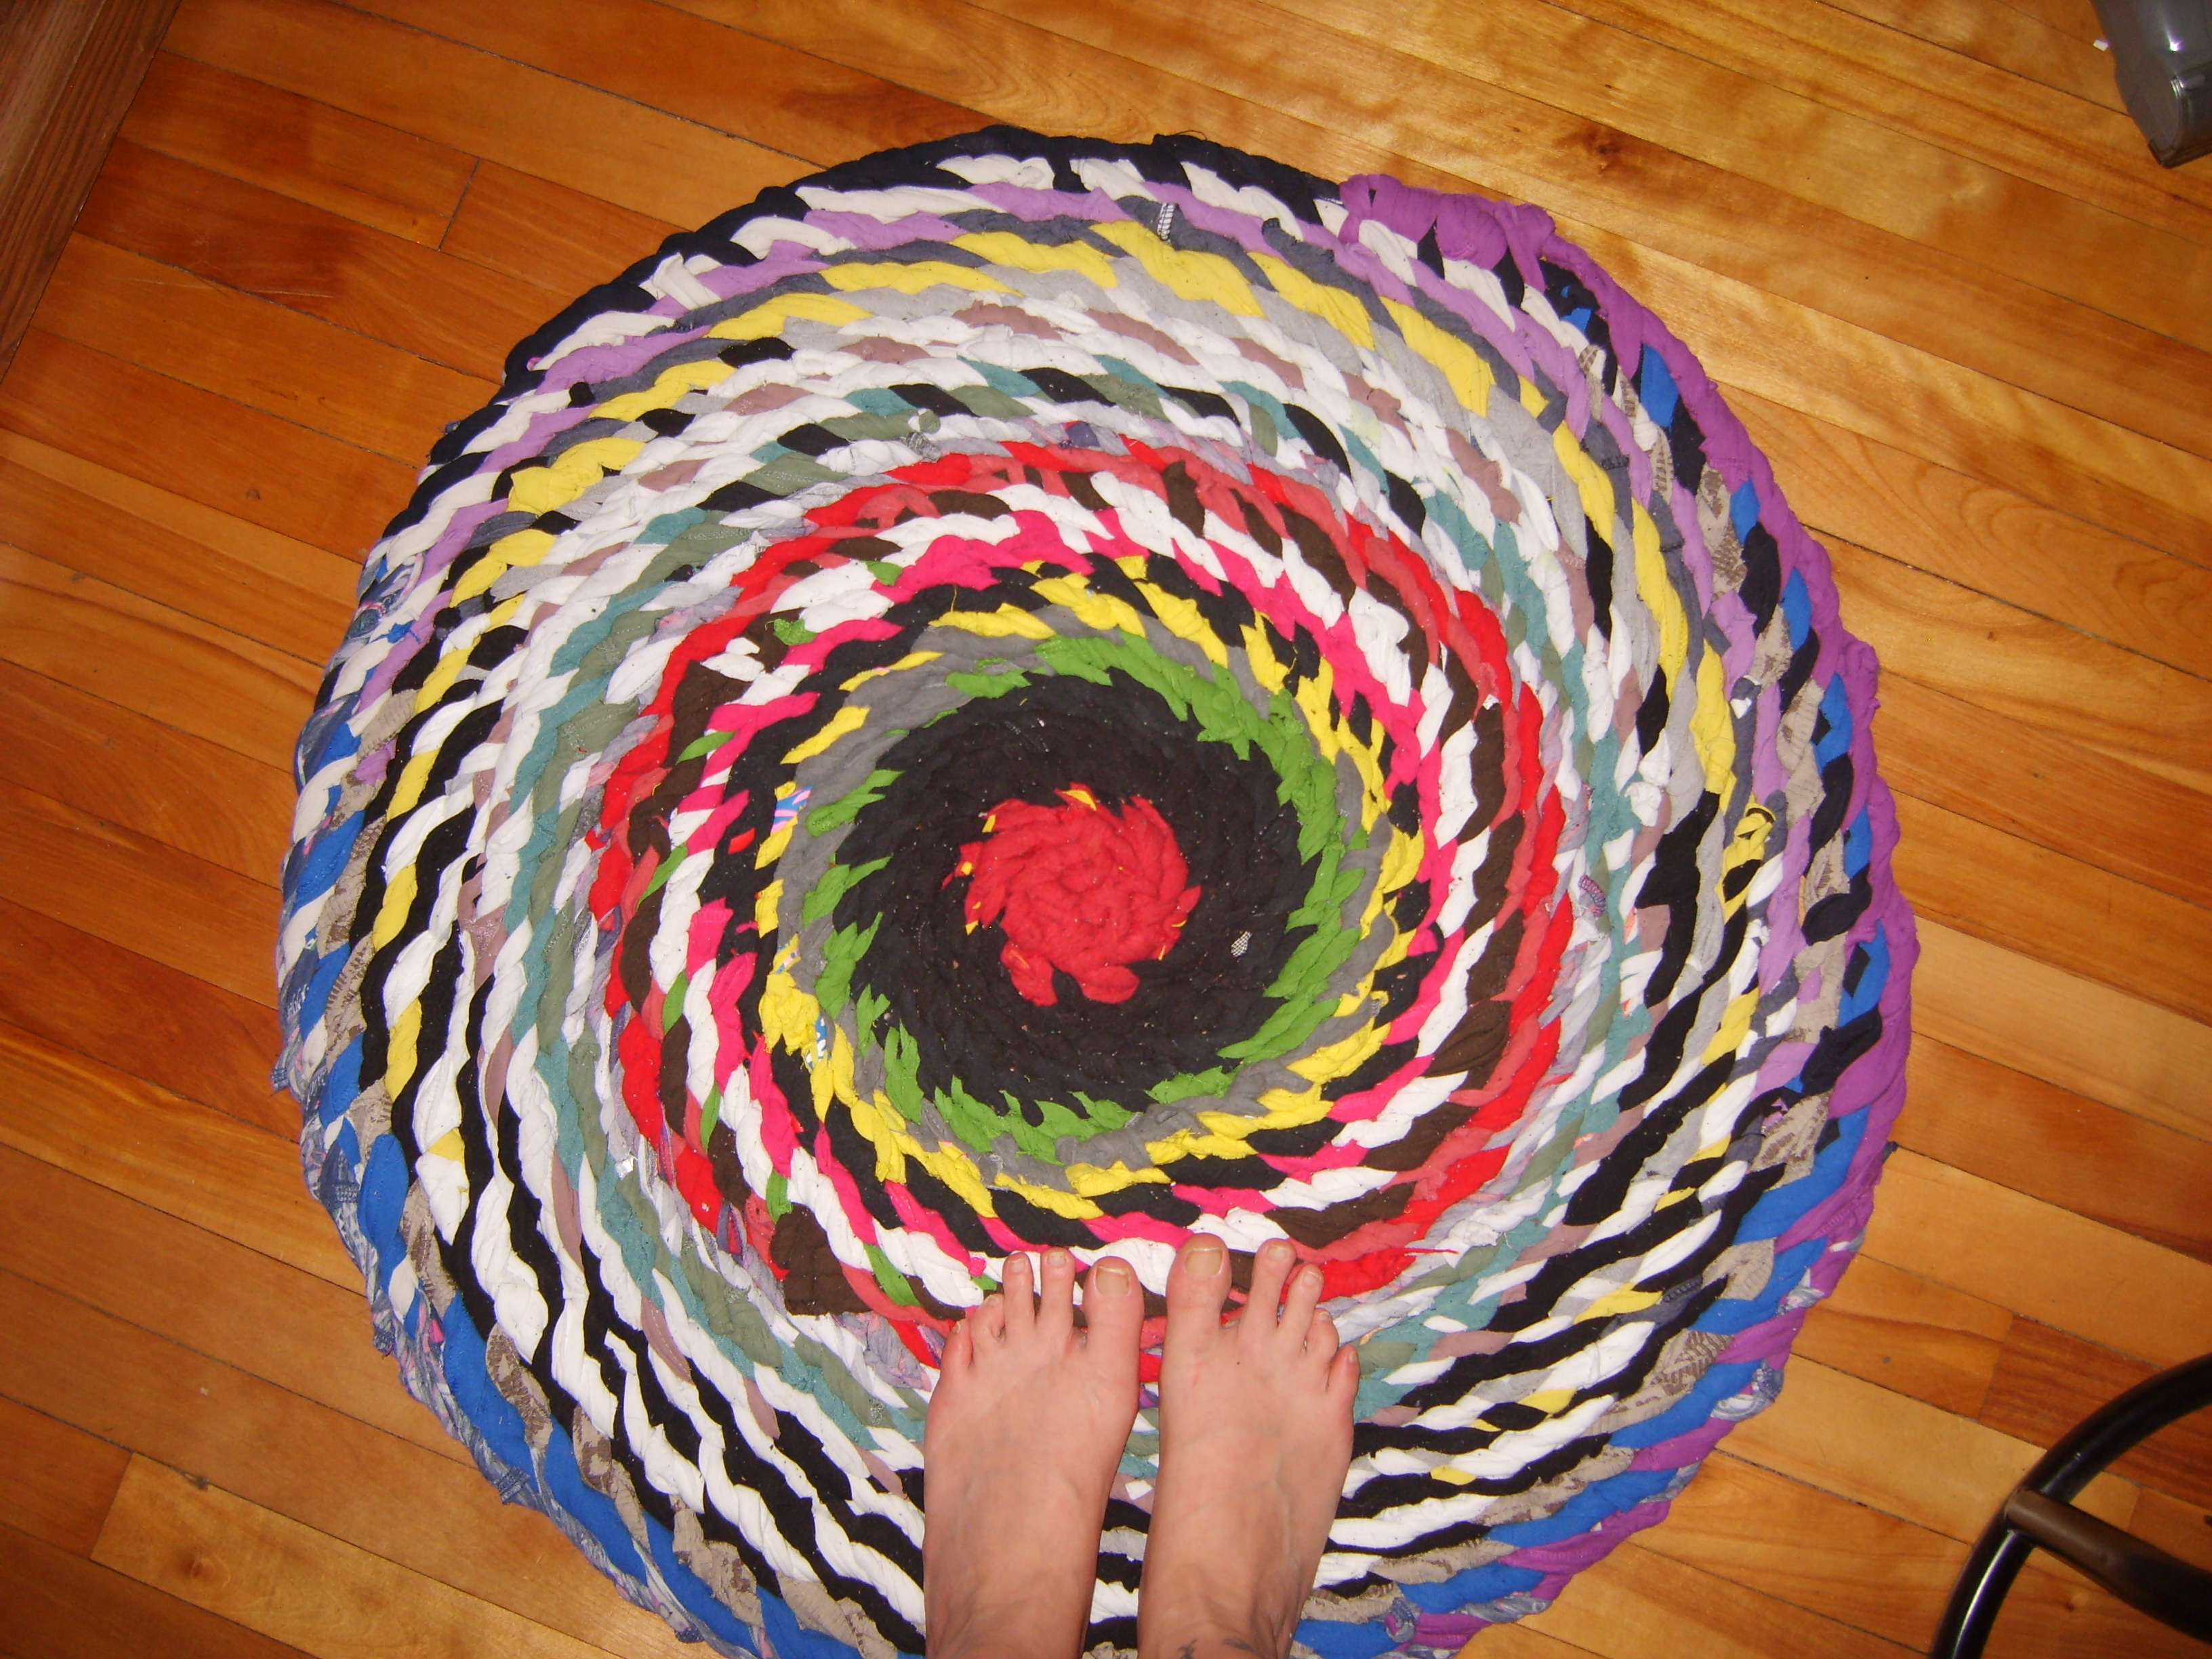 charming and colorful round braided rugs on wooden floor for floor decor ideas